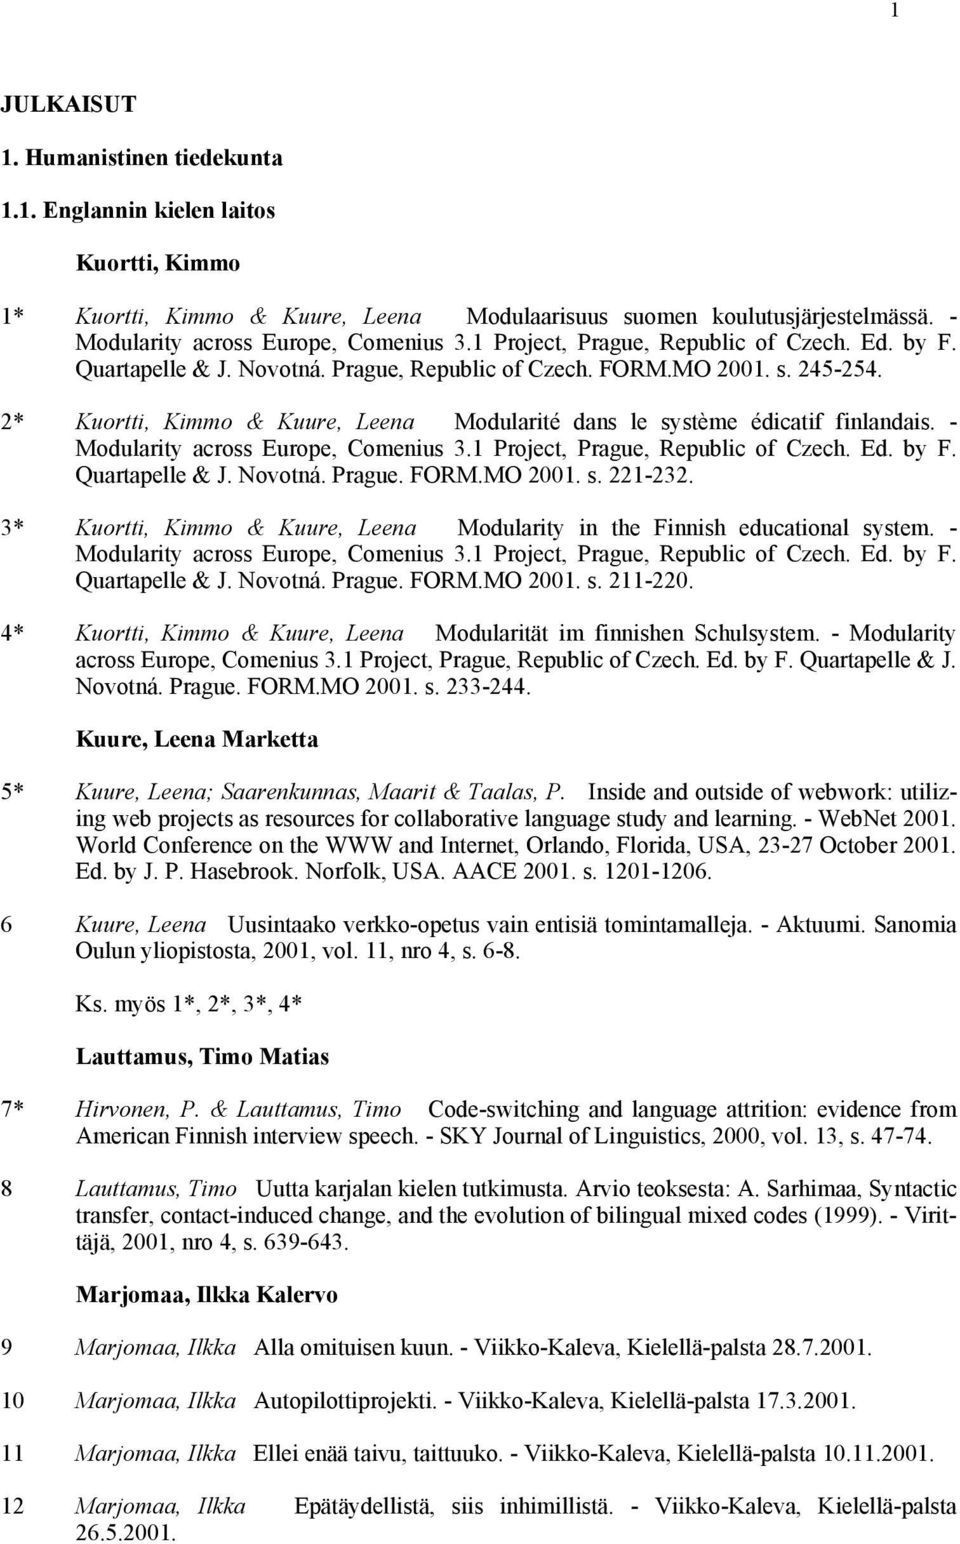 2* Kuortti, Kimmo & Kuure, Leena Modularité dans le système édicatif finlandais. - Modularity across Europe, Comenius 3.1 Project, Prague, Republic of Czech. Ed. by F. Quartapelle & J. Novotná.